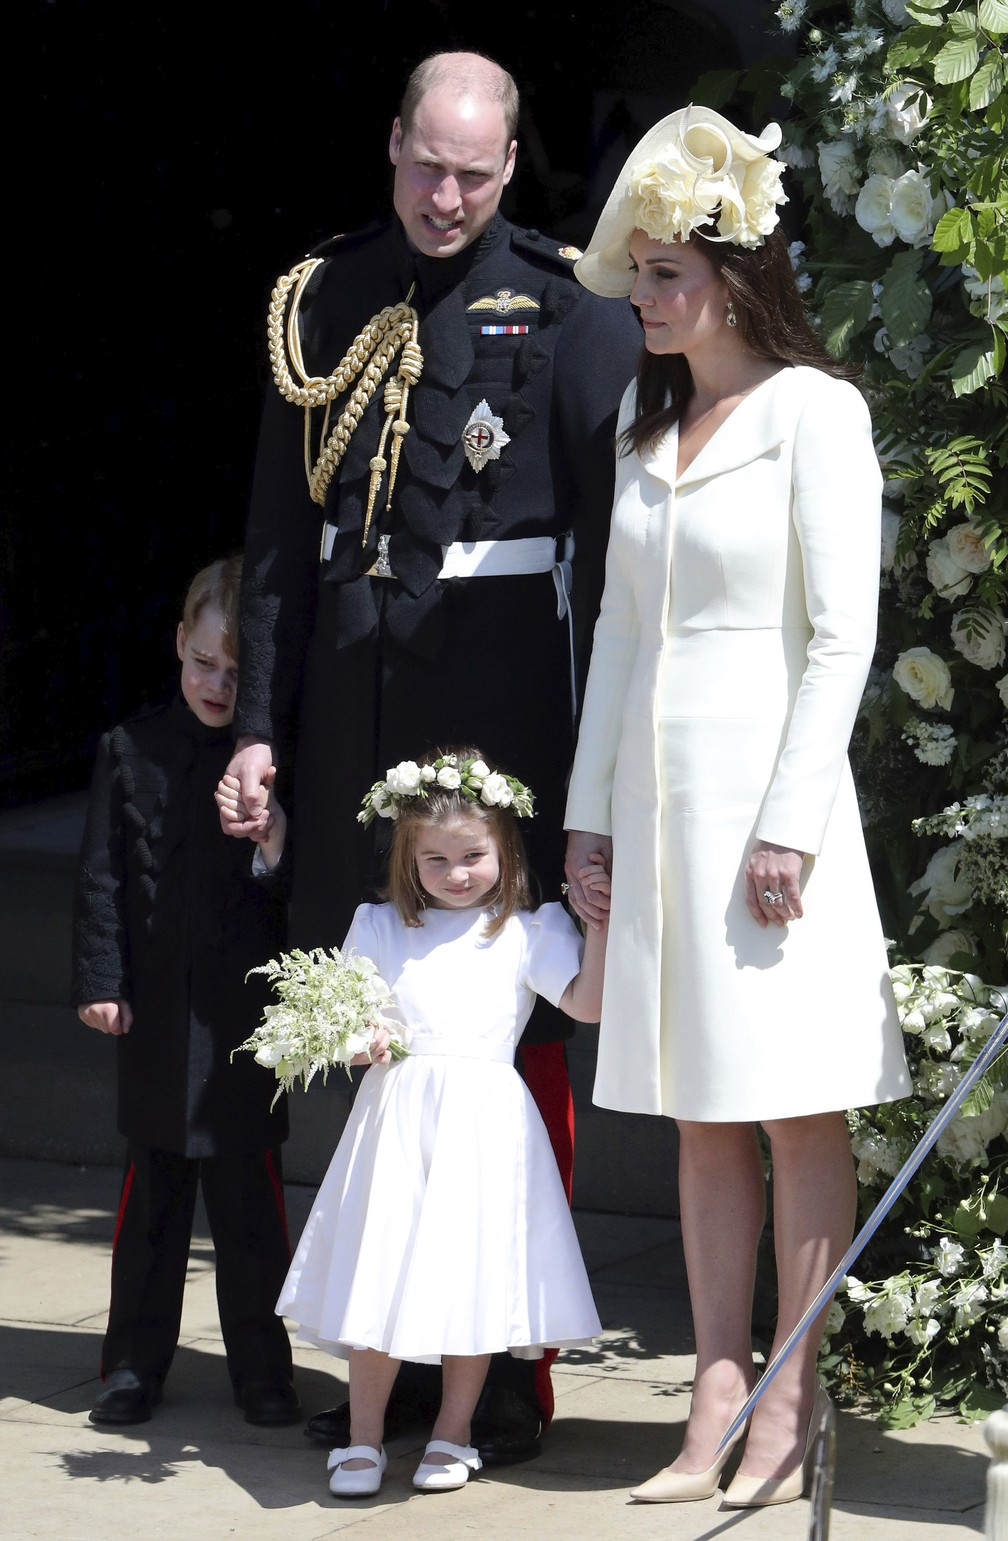 Kate Middleton com o príncipe William e os filhos, George e Charlotte — Foto: Andrew Matthews/pool photo via AP